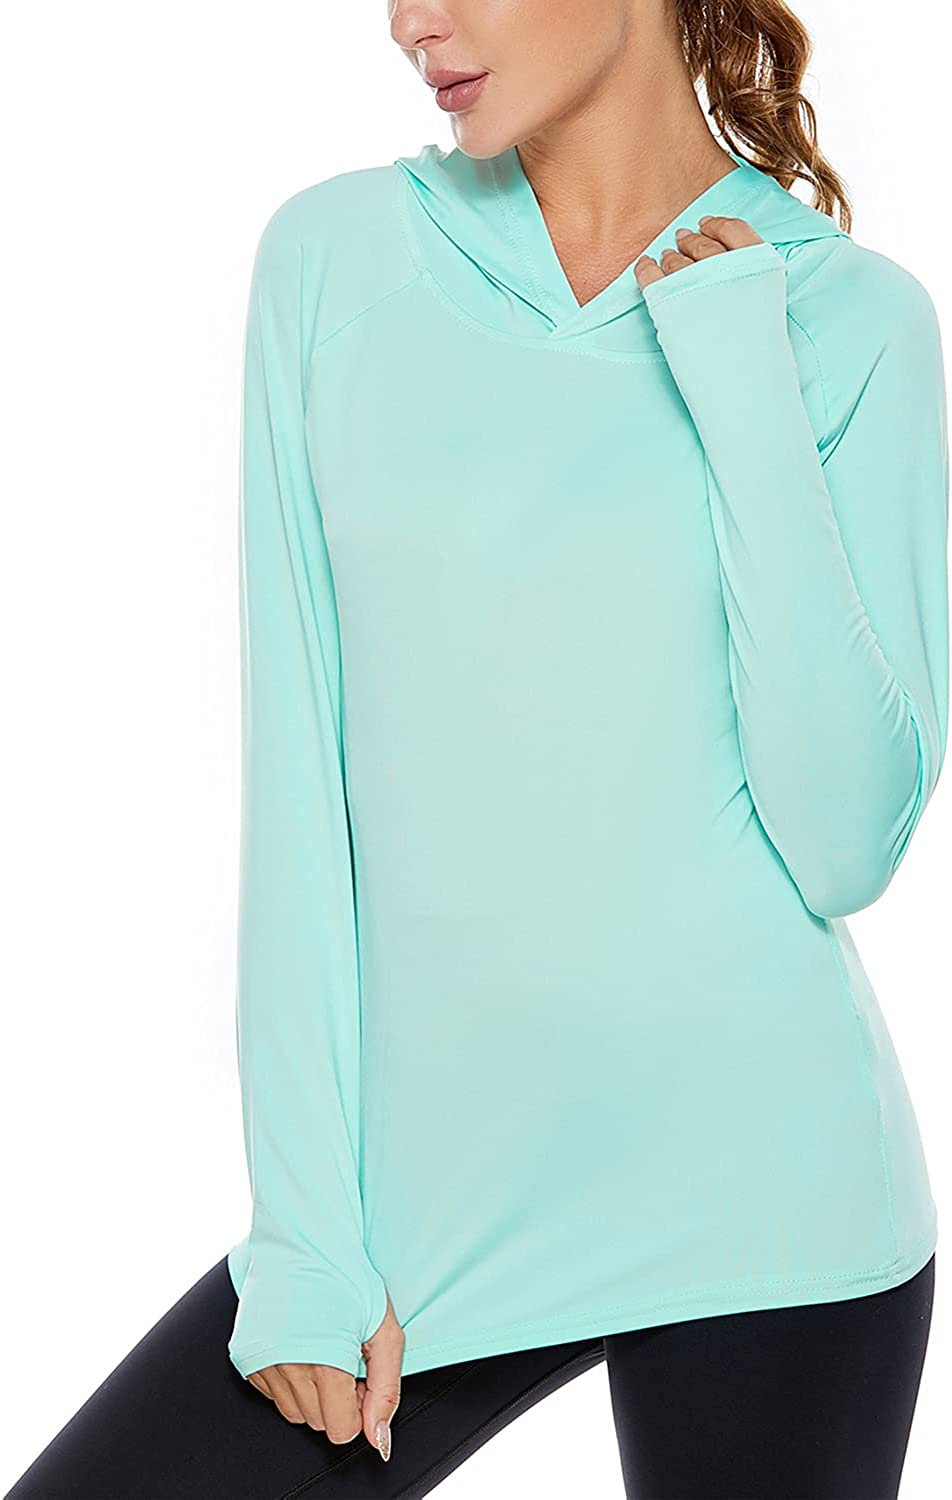 Women's UPF 50+ Sun Protection Long Inventory cleanup selling sale Athletic Hikin Sleeve 5% OFF Hoodie